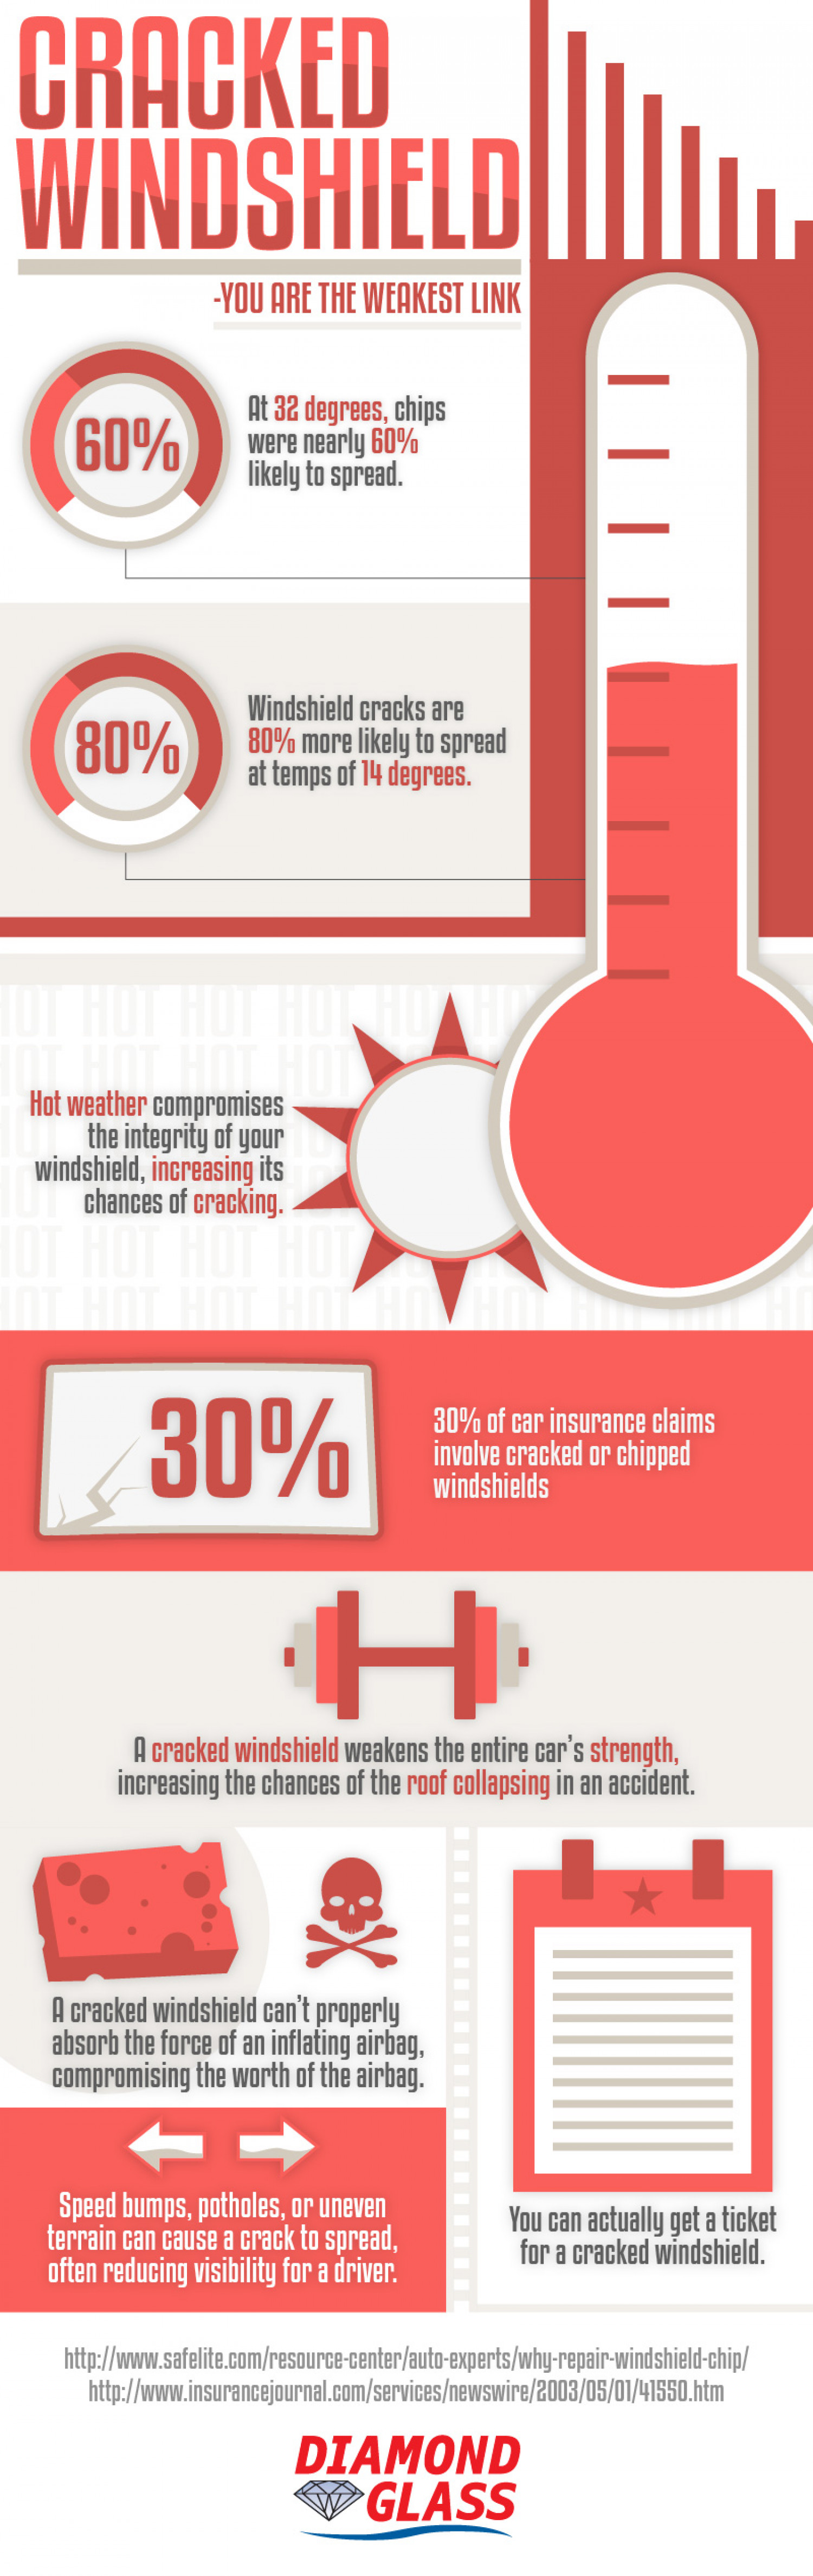 A Cracked Windshield is the Weakest Link Infographic